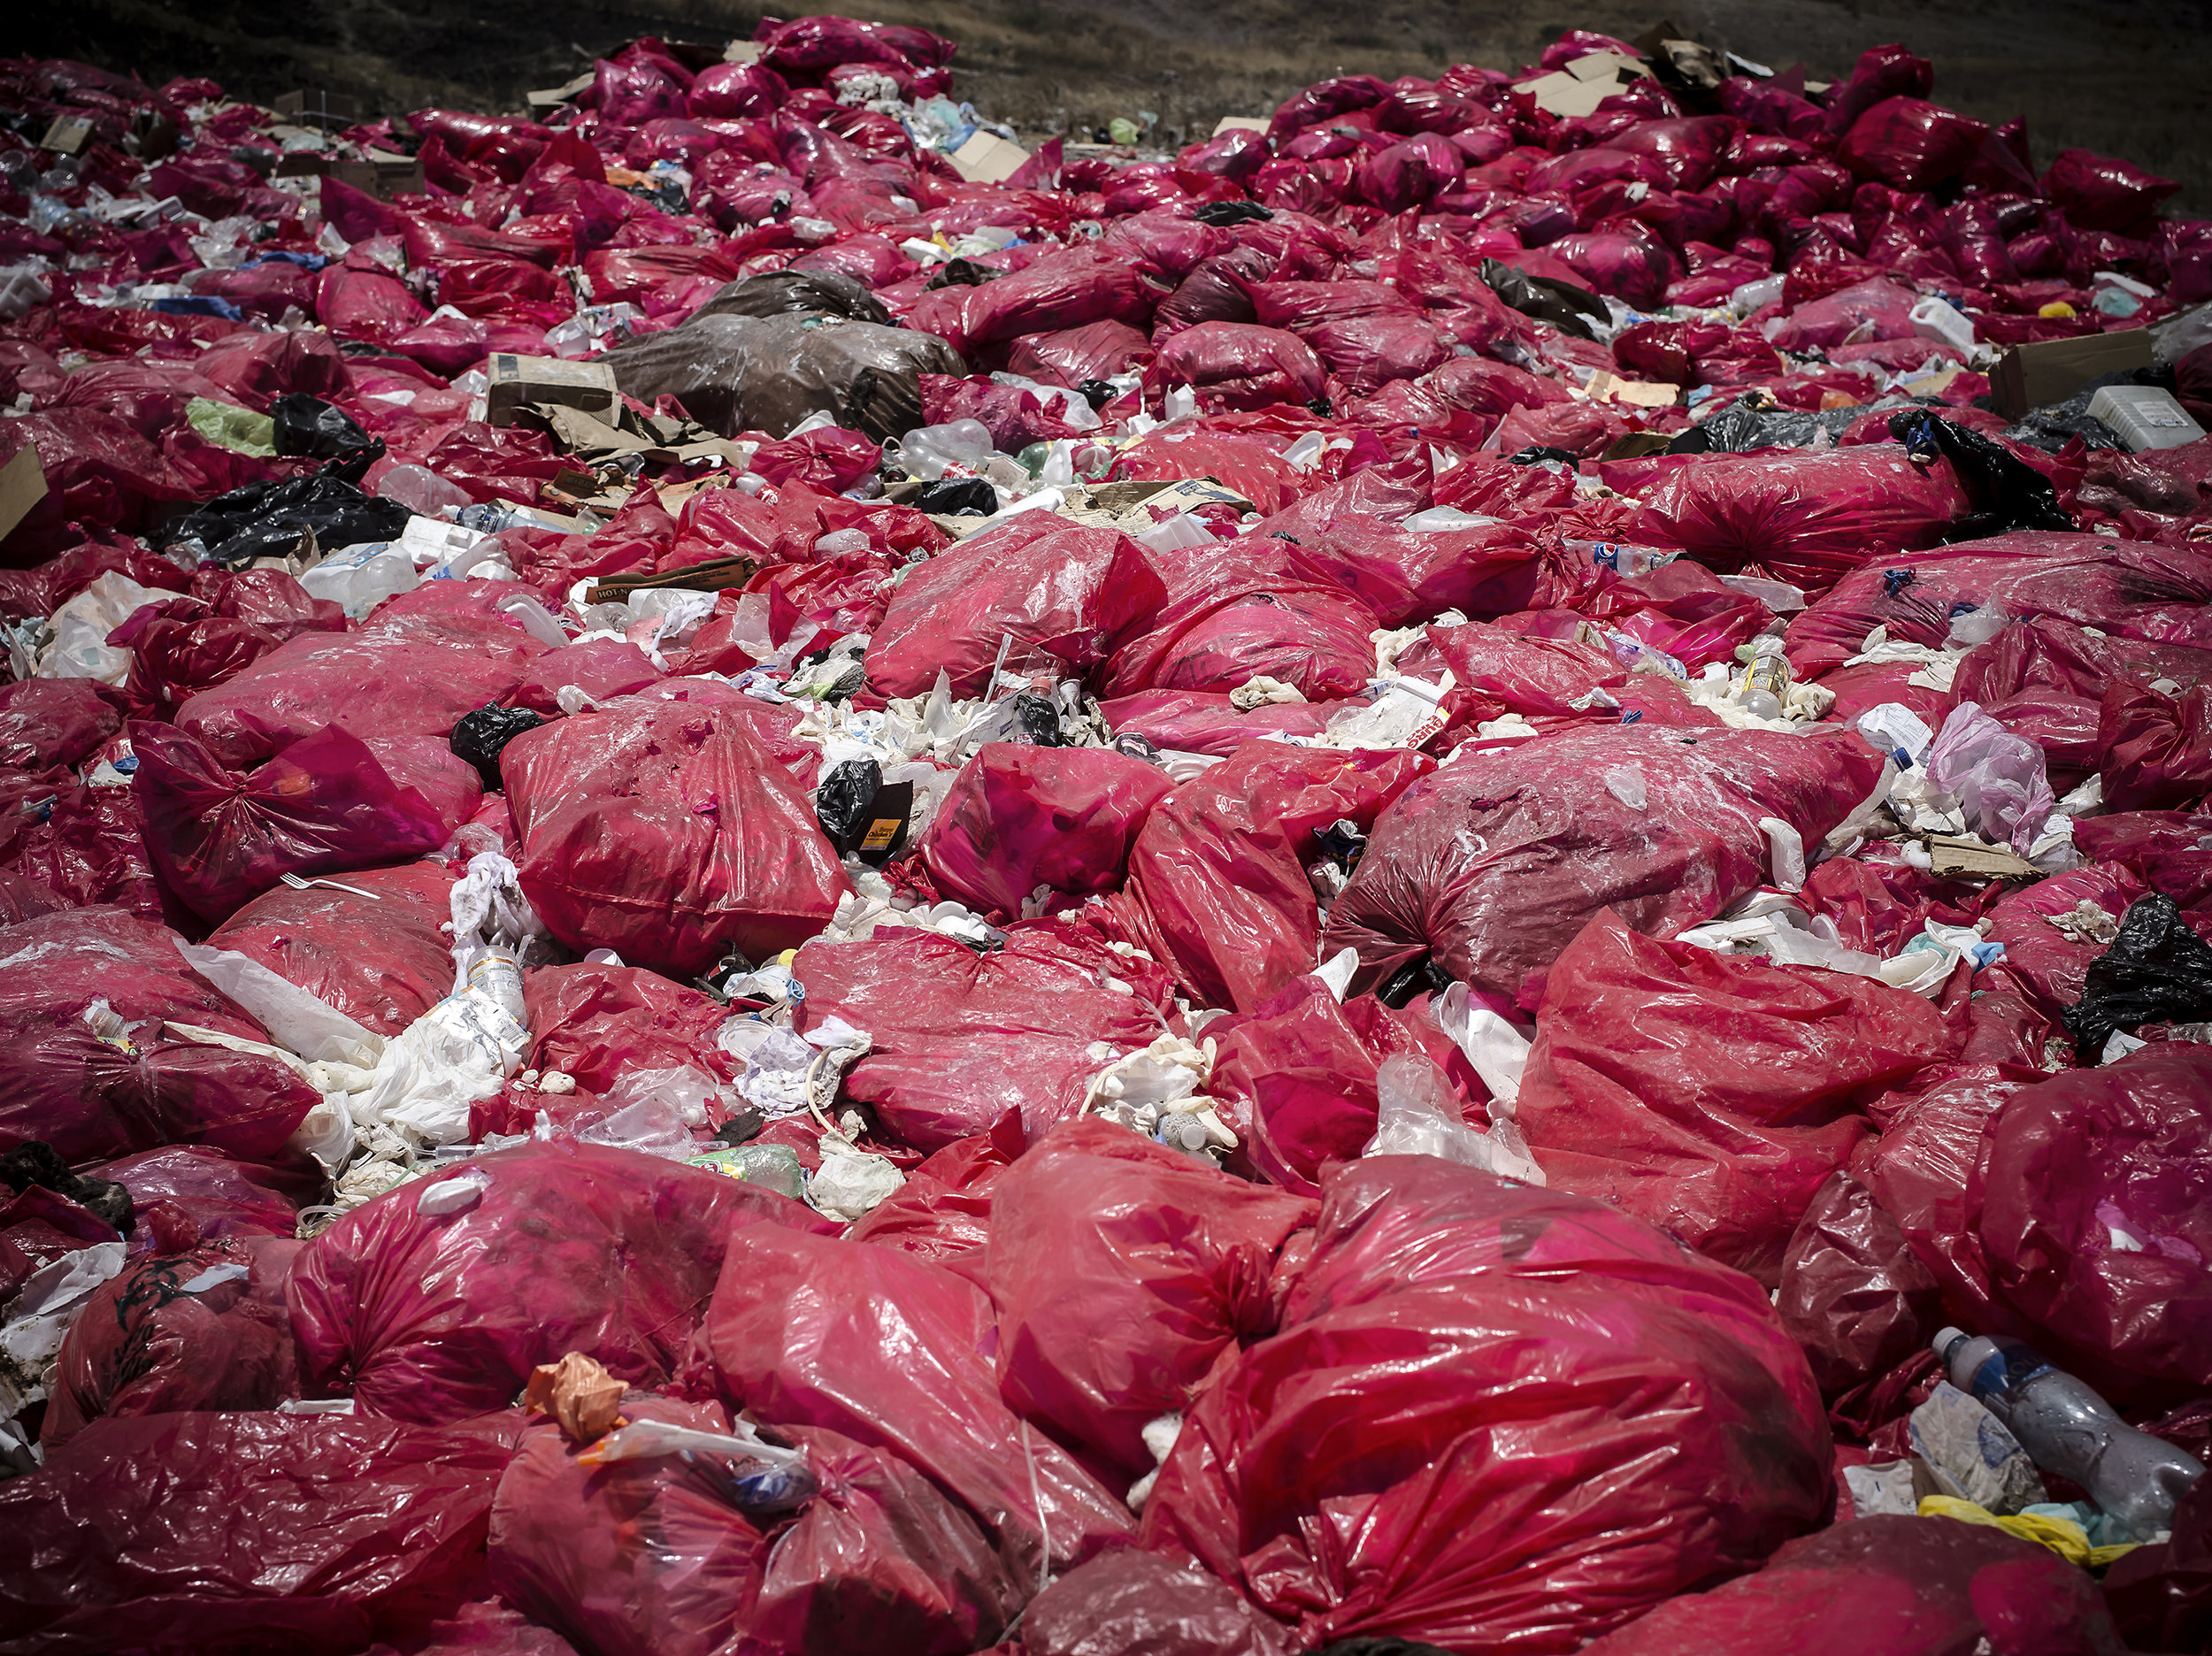 Thousands of hazardous medical waste bags pile on top of each other.